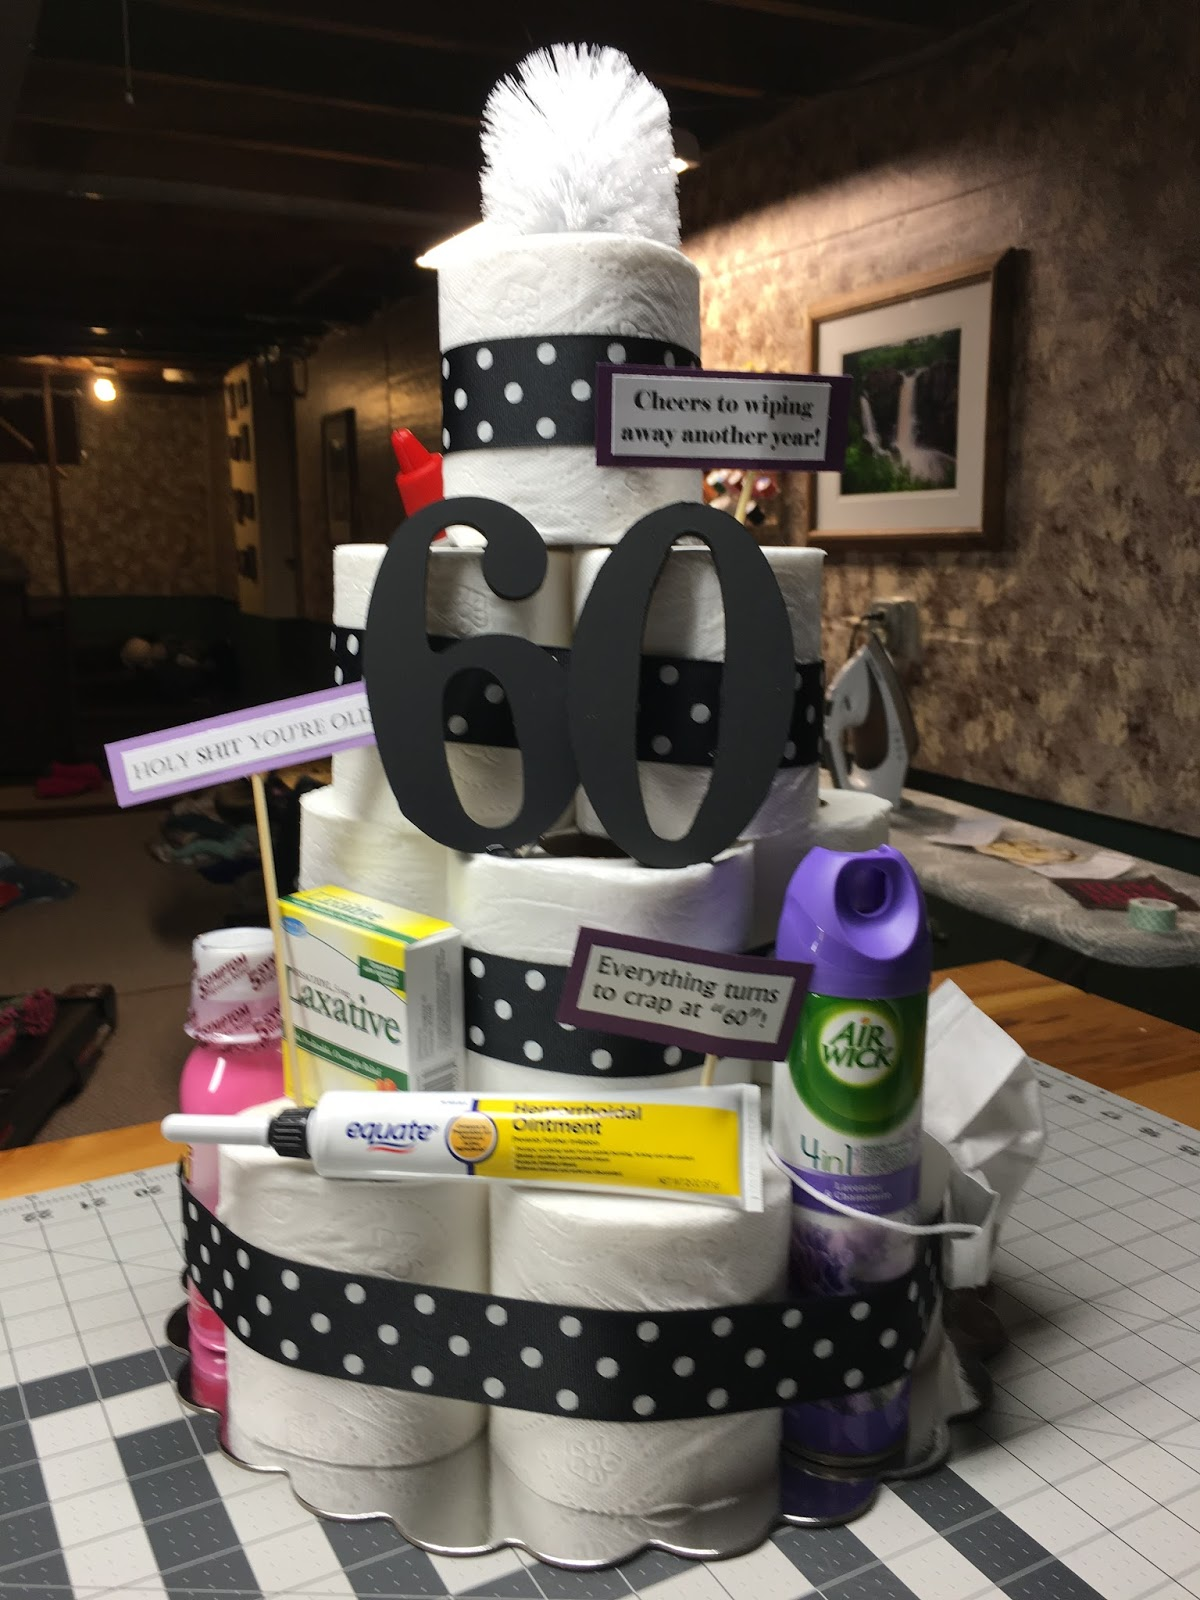 21 Clever and Funny Birthday Cakes |Funny Women Cake Ideas